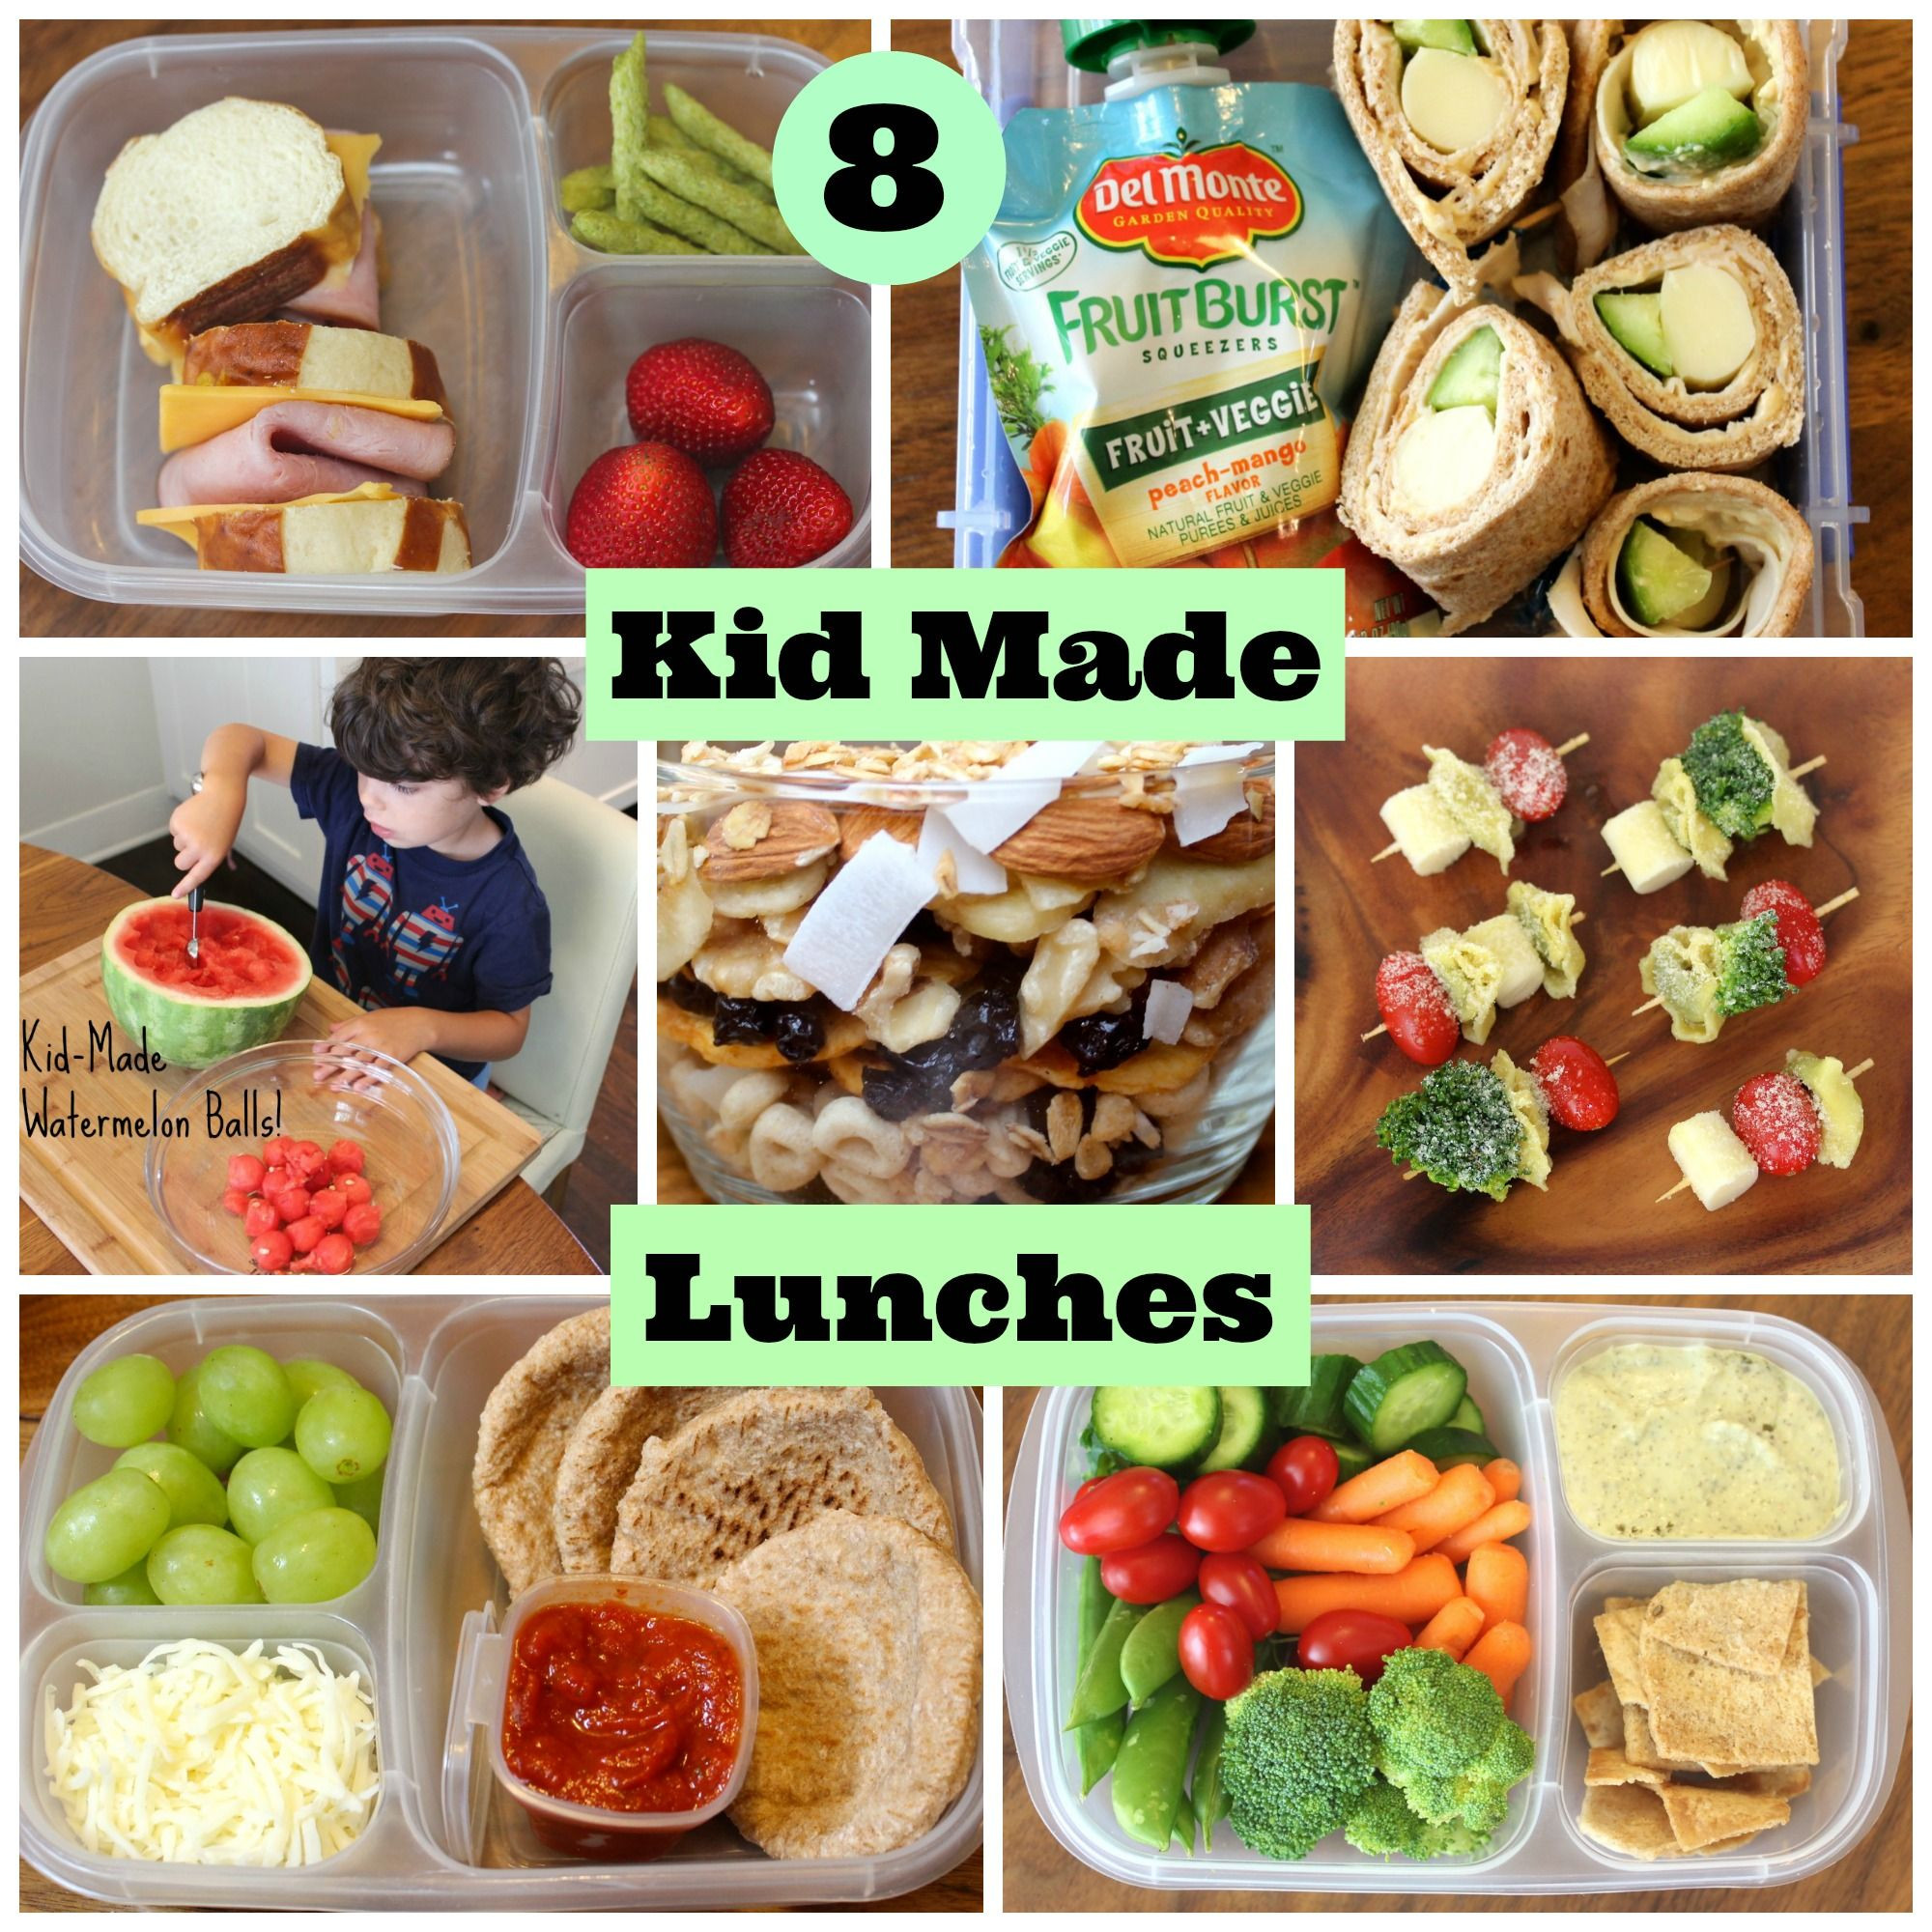 Healthy Lunches To Take To School  4 Healthy School Lunches Your Kids Can Make Themselves